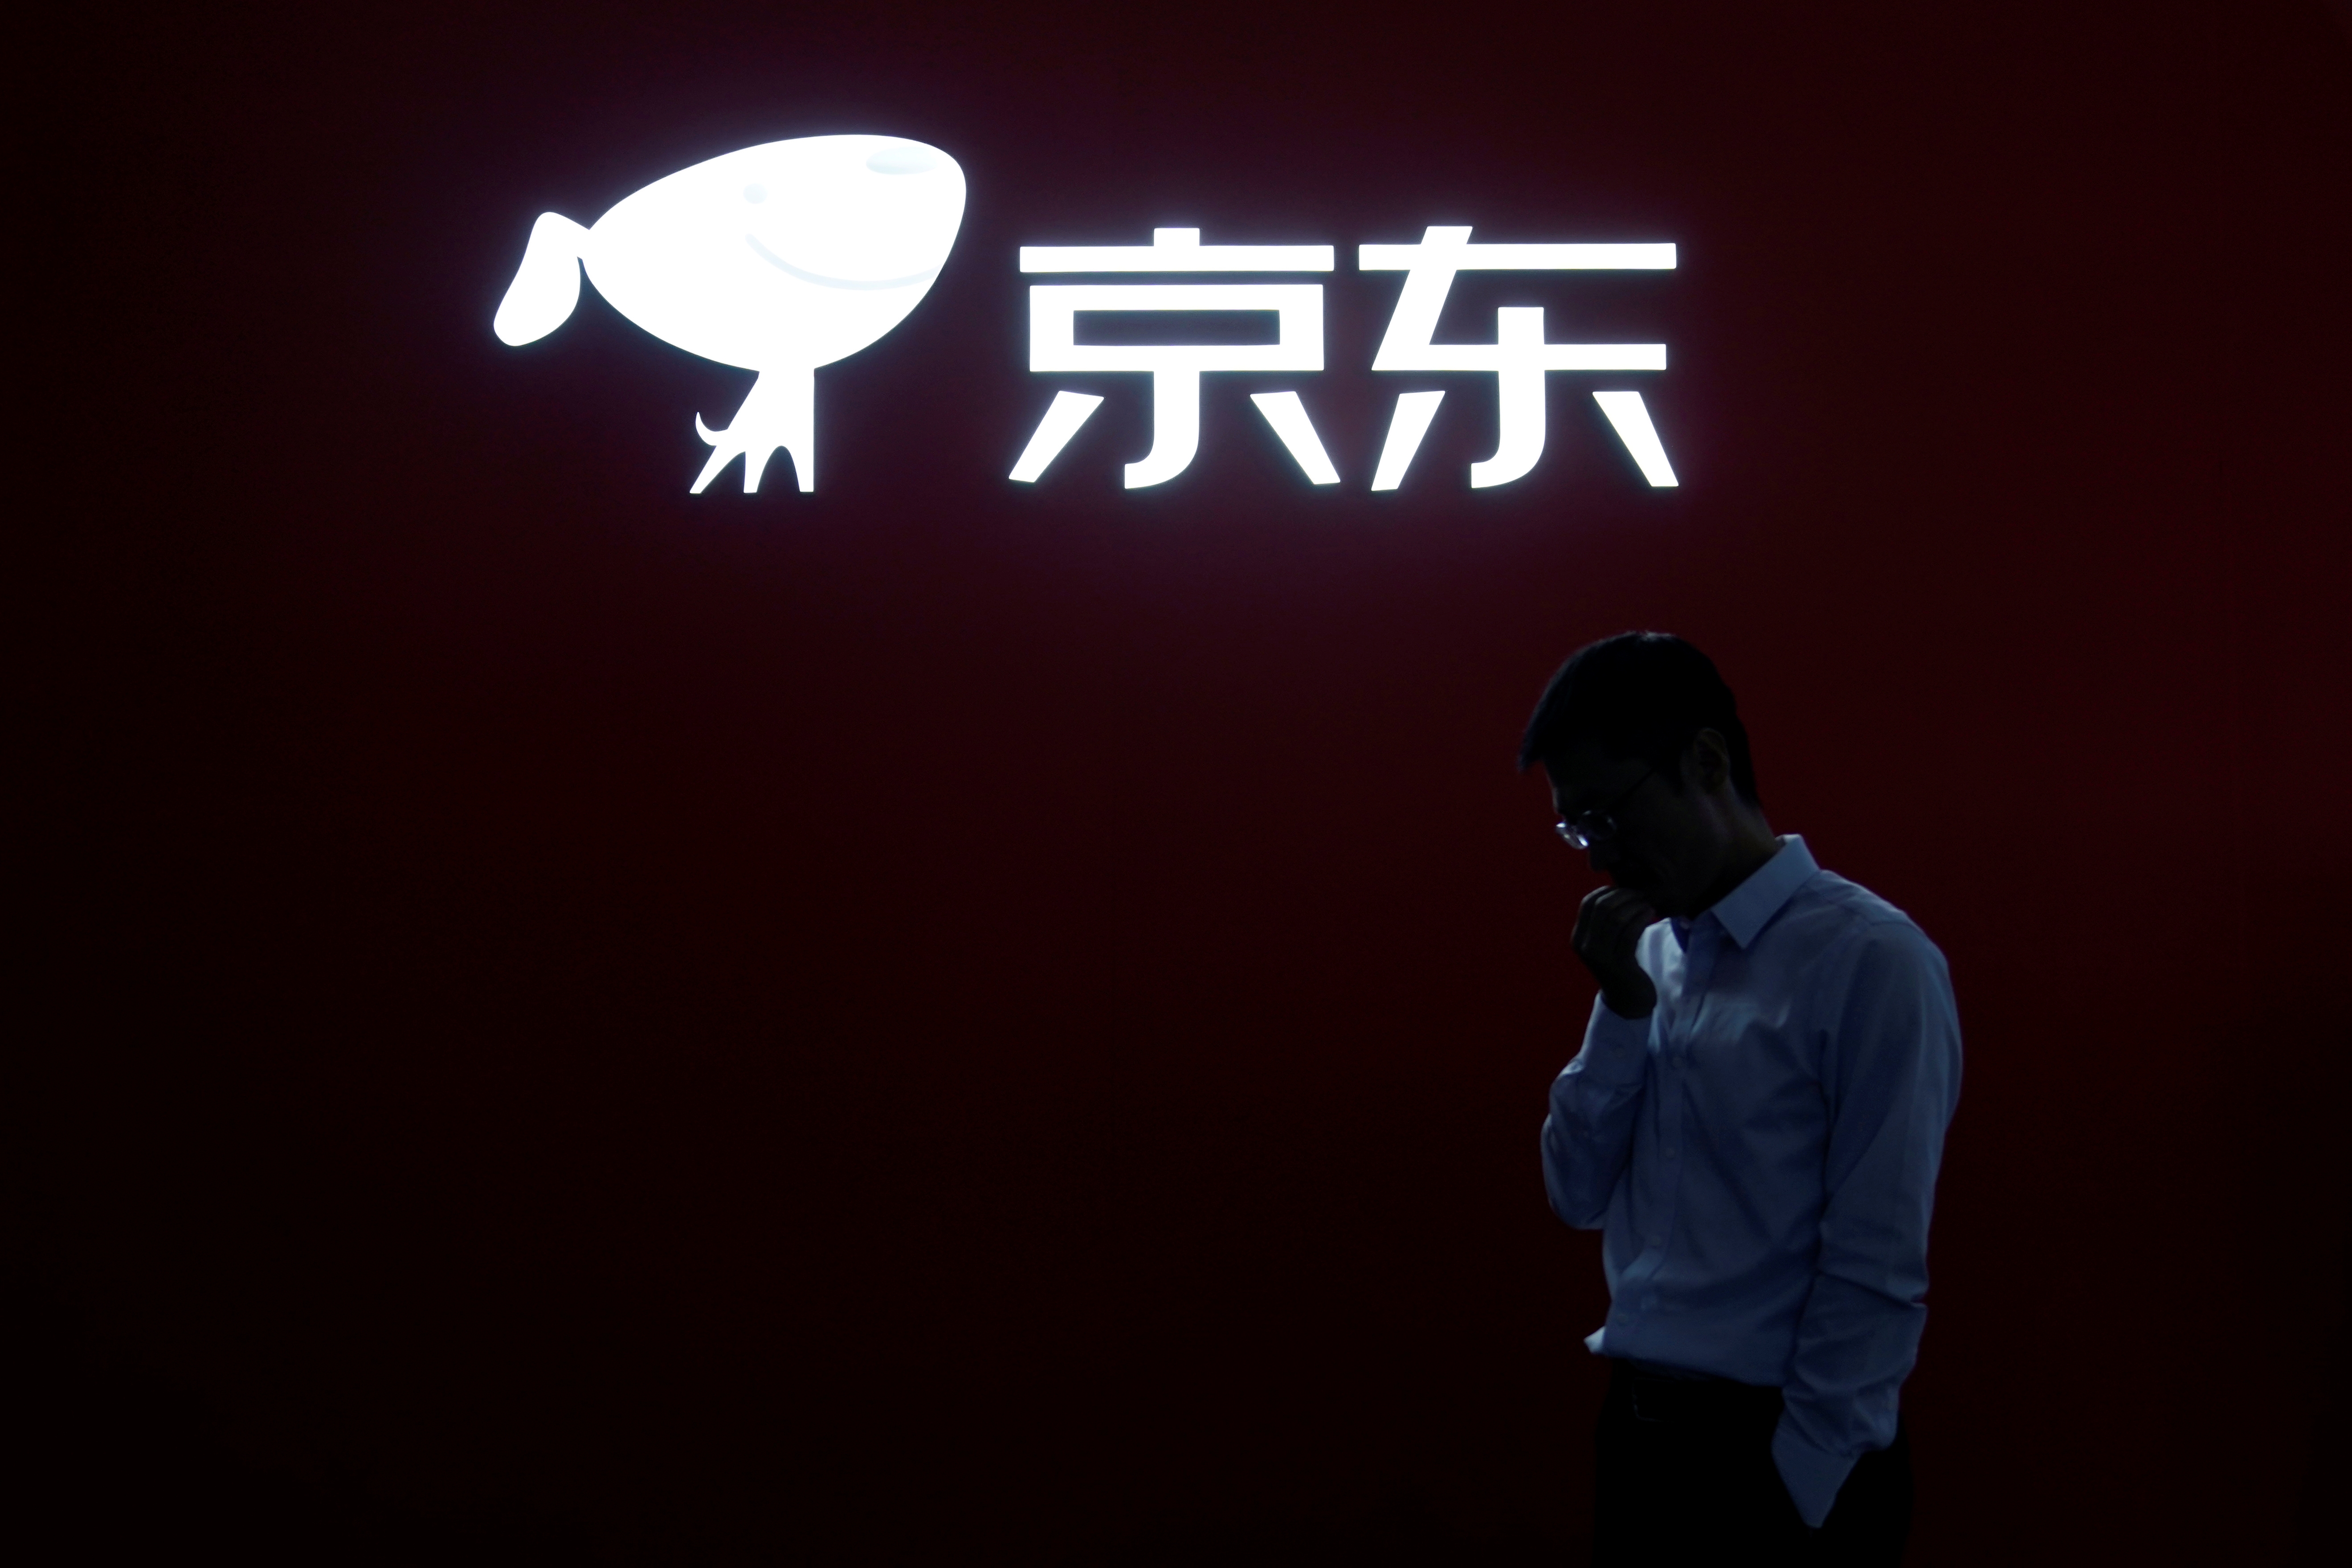 A JD.com sign is seen at the World Internet Conference (WIC) in Wuzhen, Zhejiang province, China, October 20, 2019. REUTERS/Aly Song